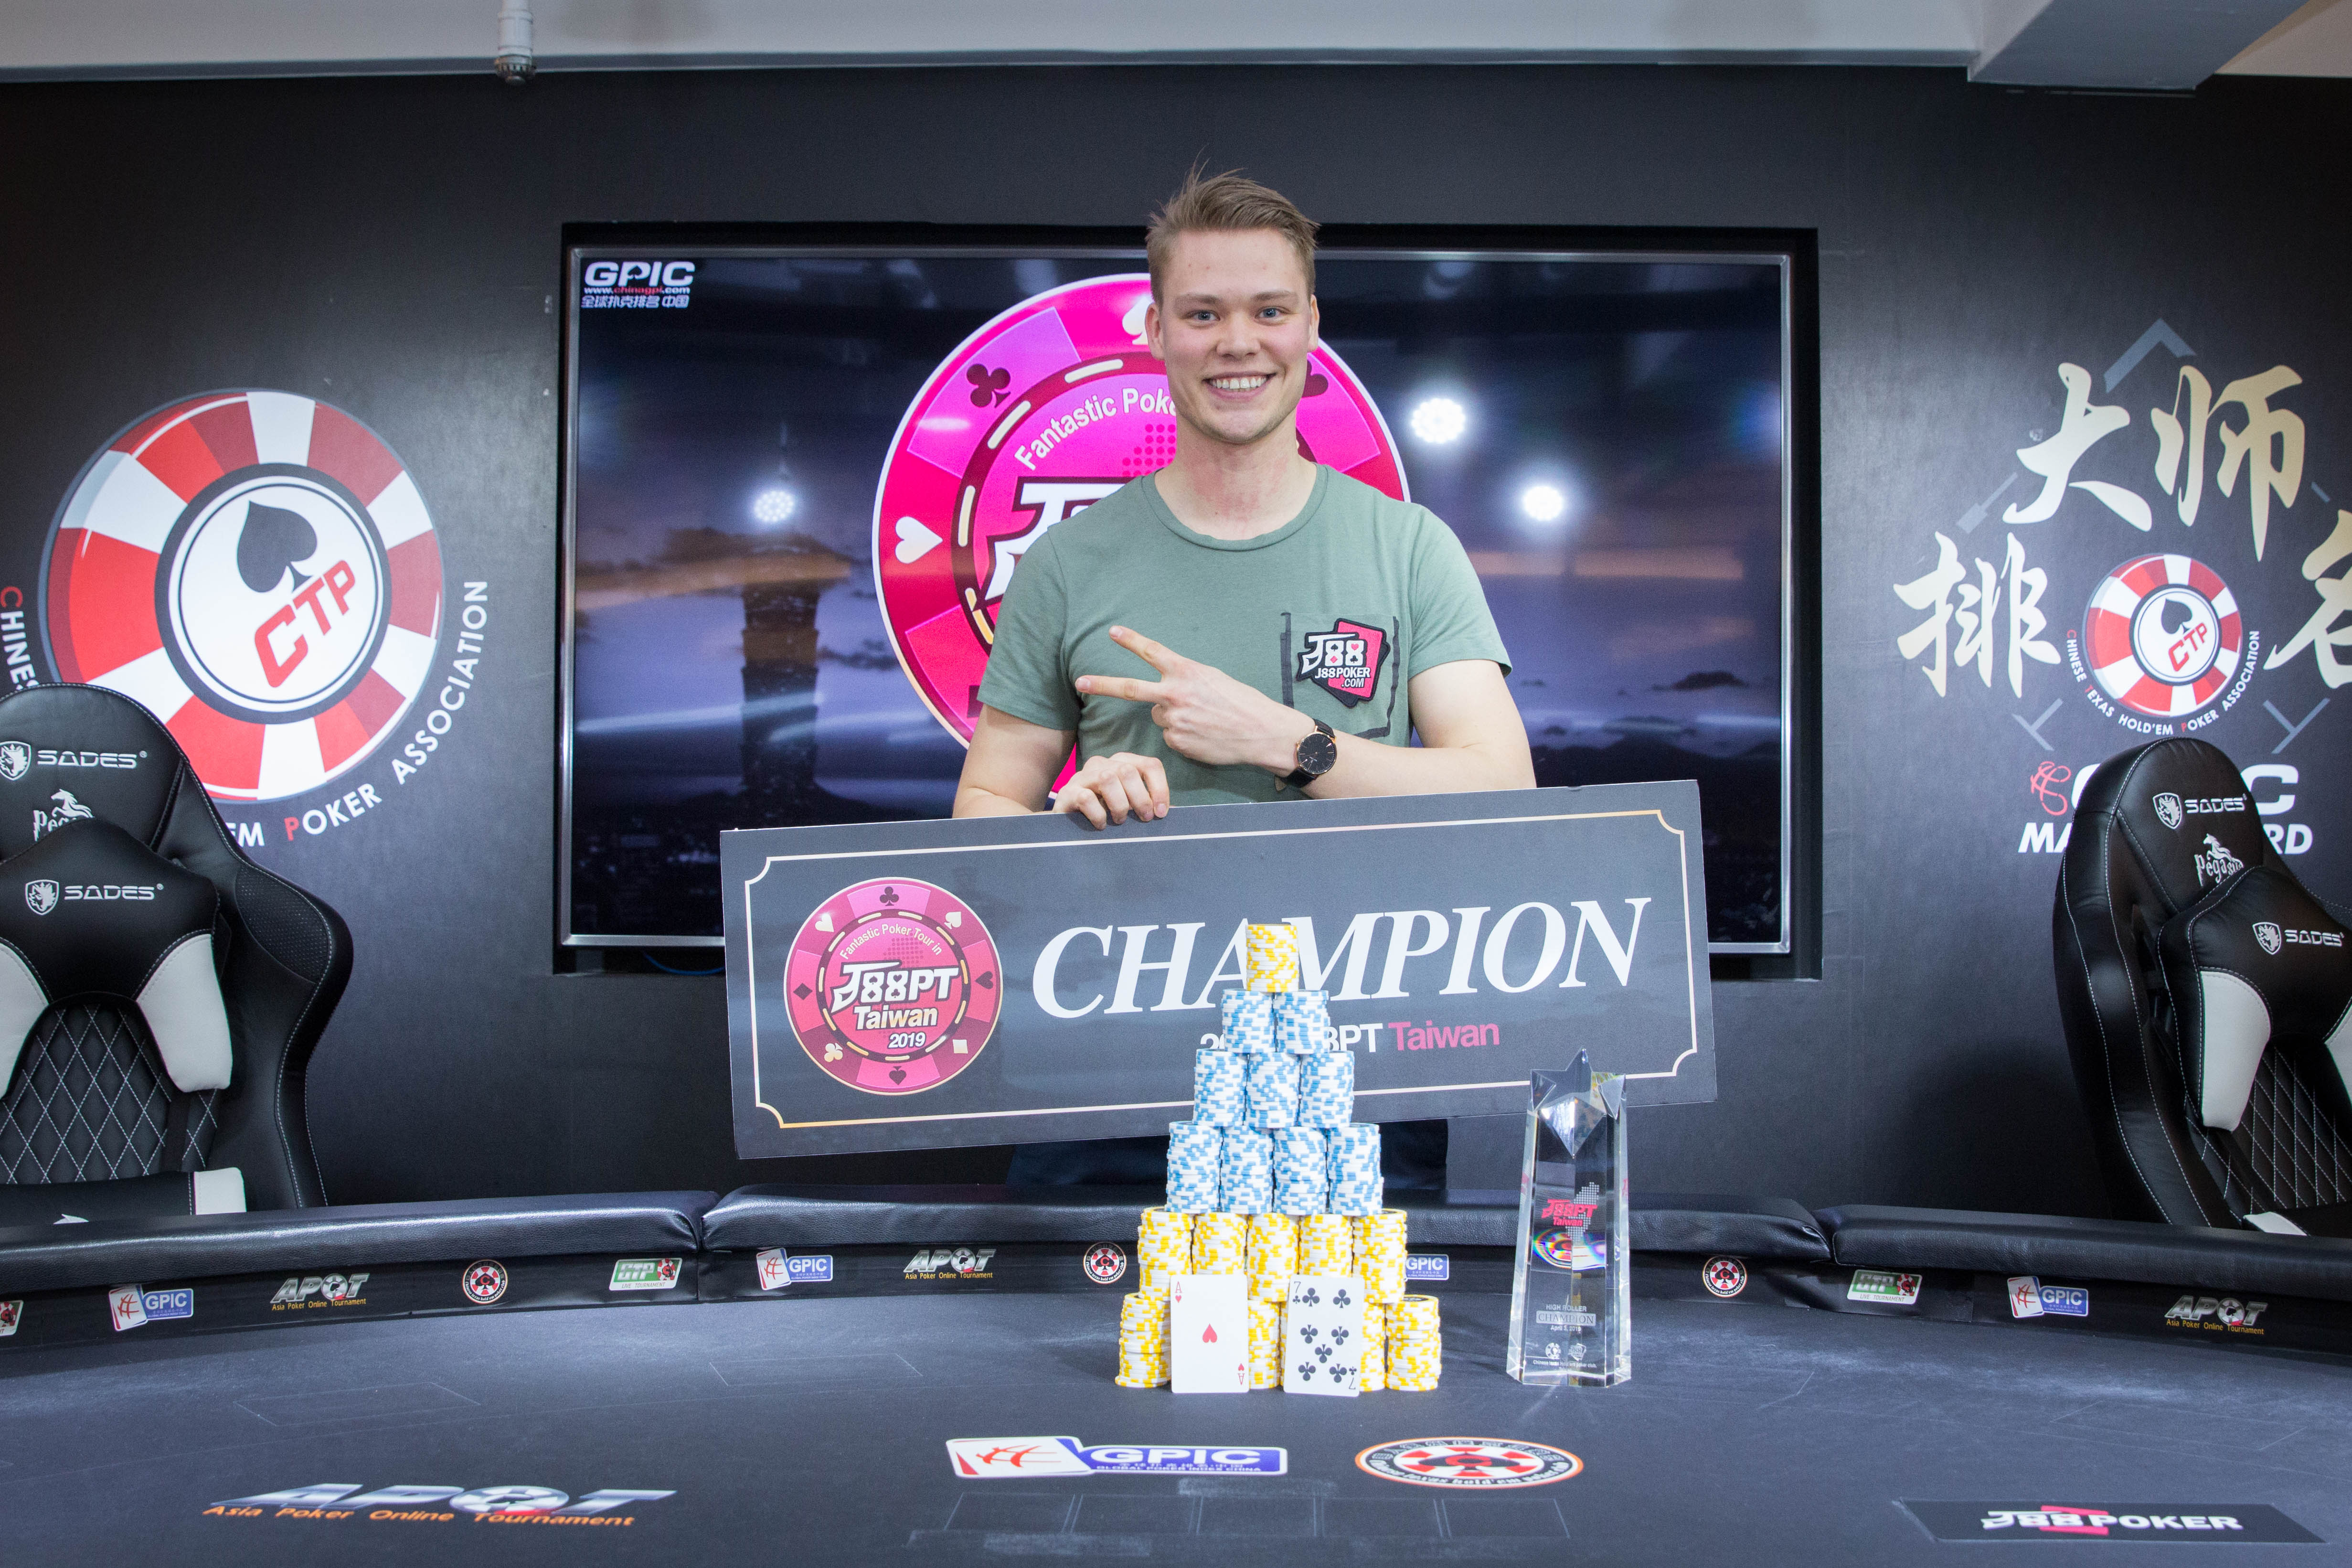 J88Poker Tour closes with high marks and Eemil Tuominen winning the High Roller